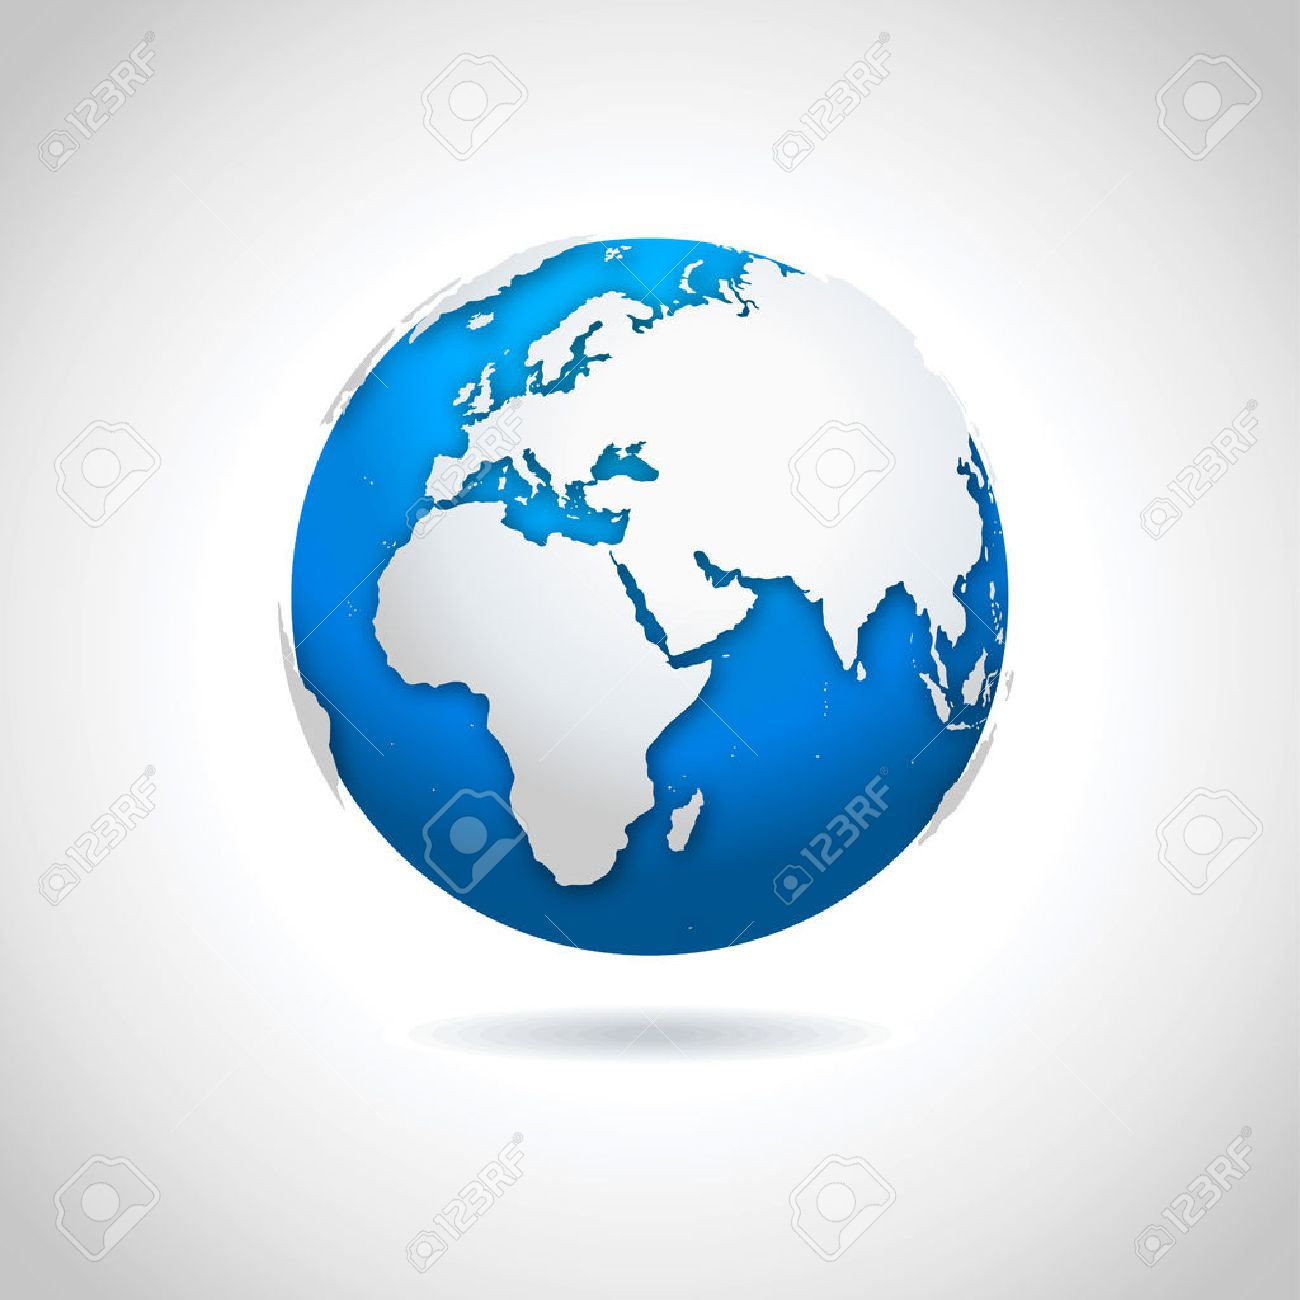 Vector illustration of blue-white globe symbol with drop shadow effect. - 43473887